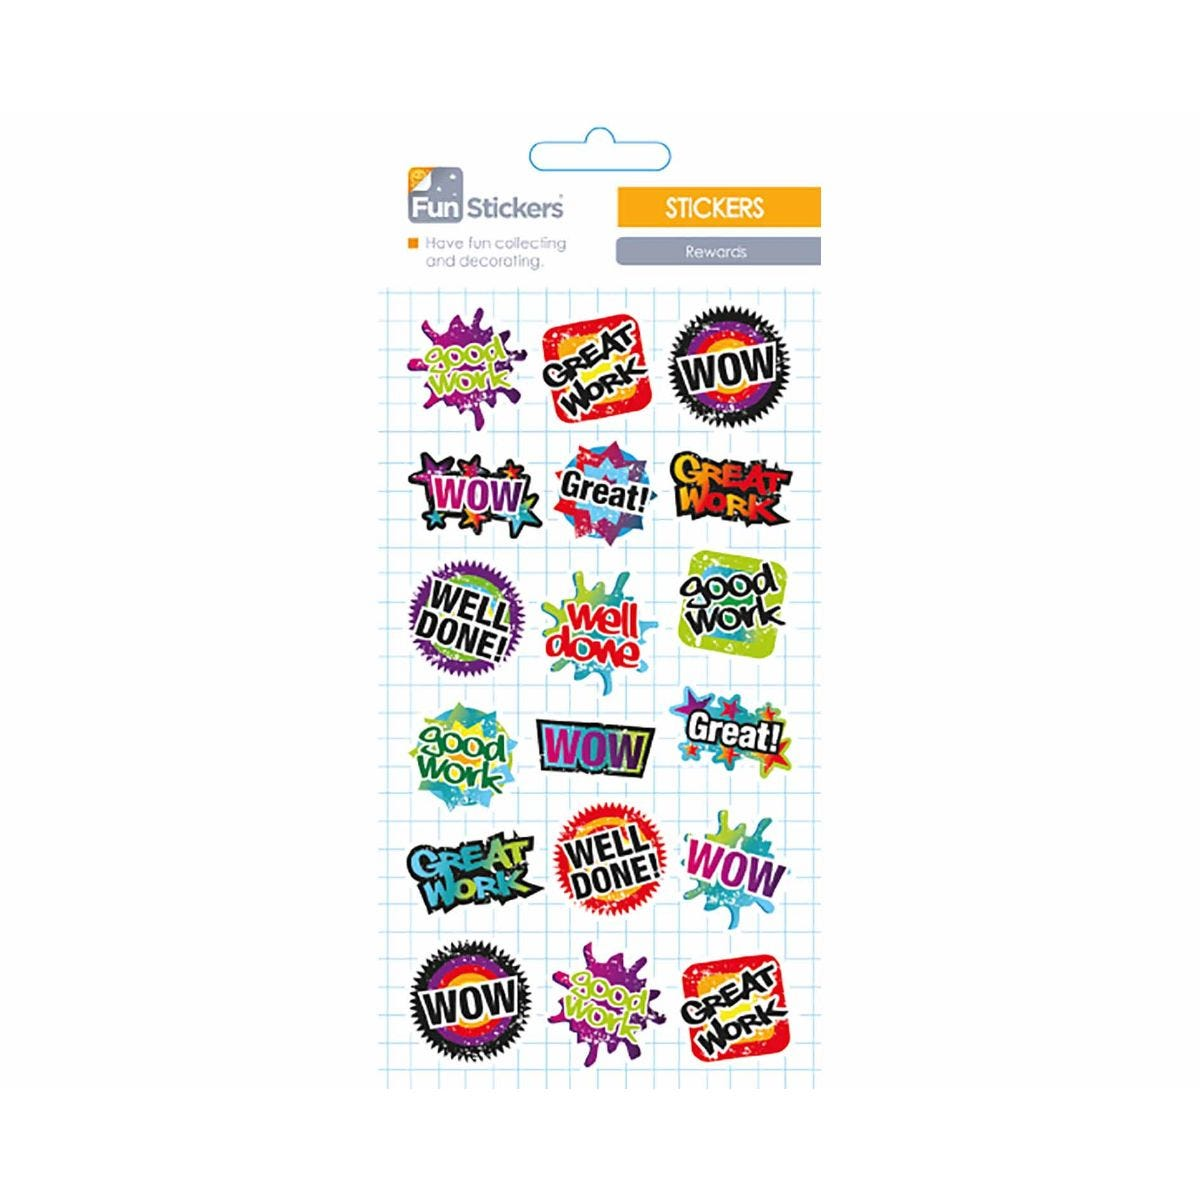 Other Art Supplies Strong-Willed Fun Stickers Rewards